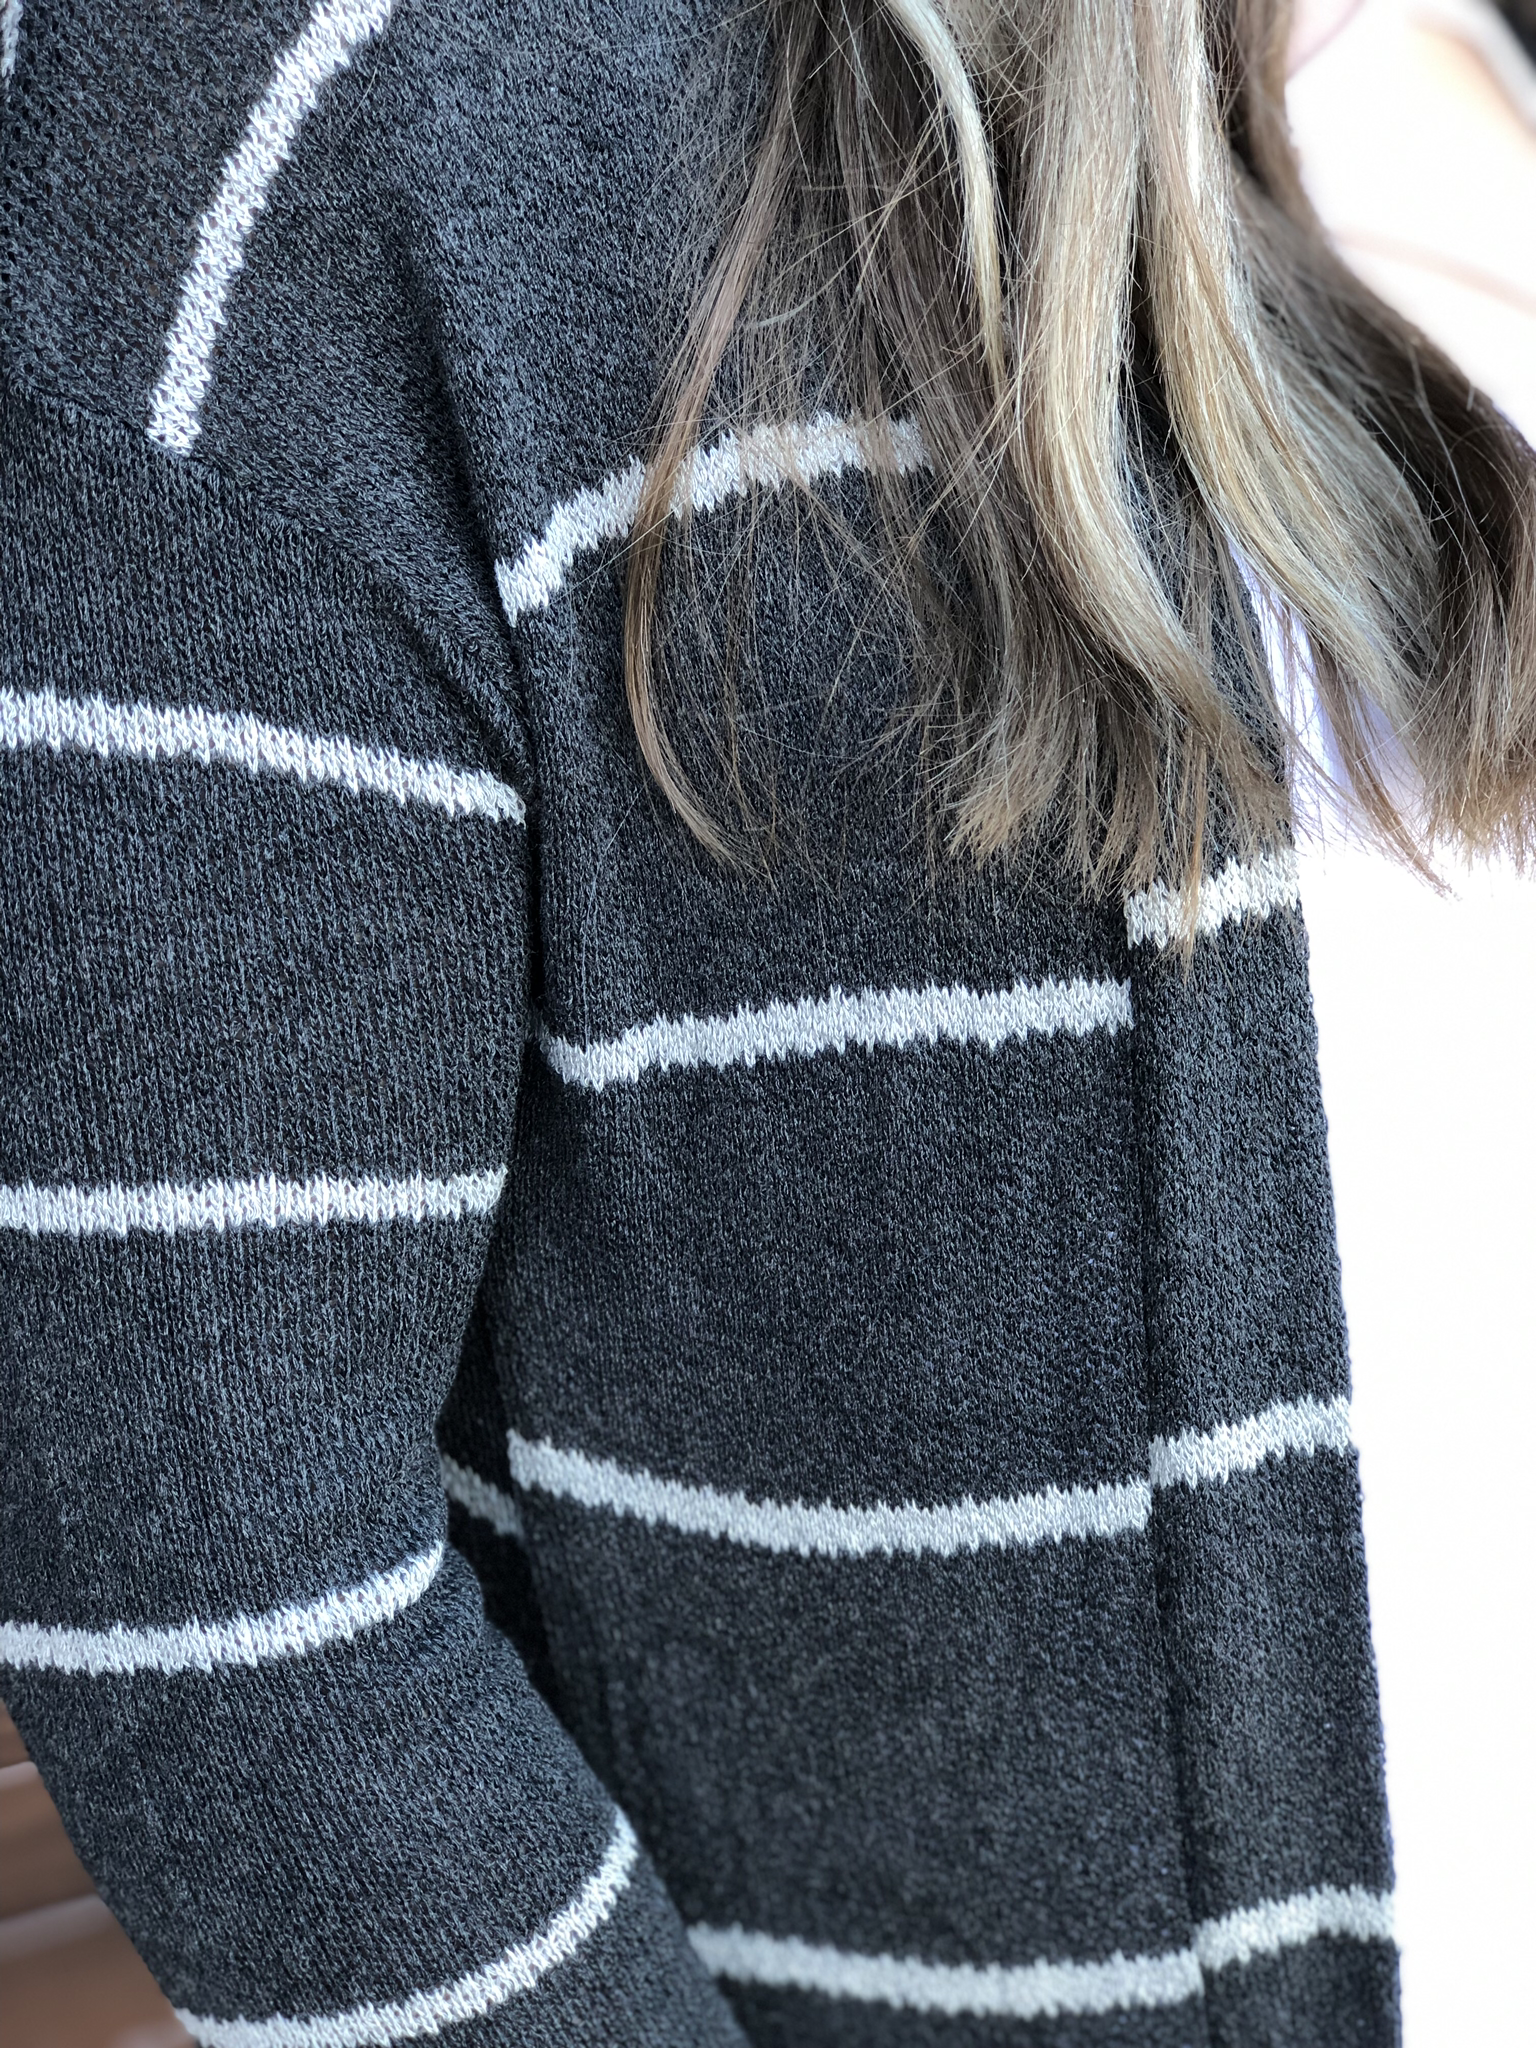 The Light Knit Cardigan - Charcoal